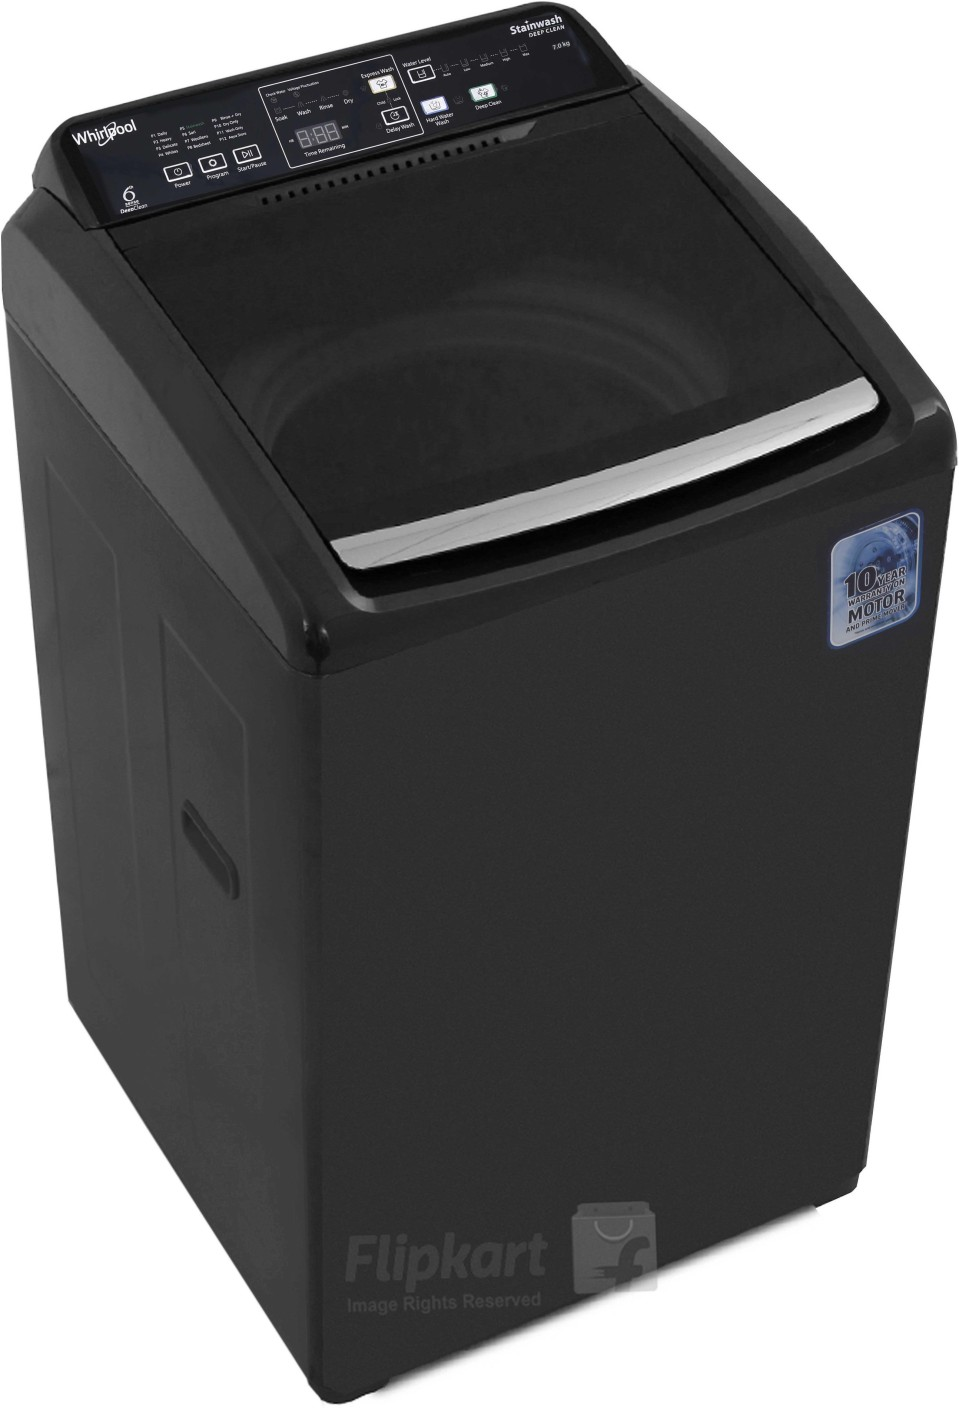 Whirlpool 7 kg Fully Automatic Top Load Washing Machine ...